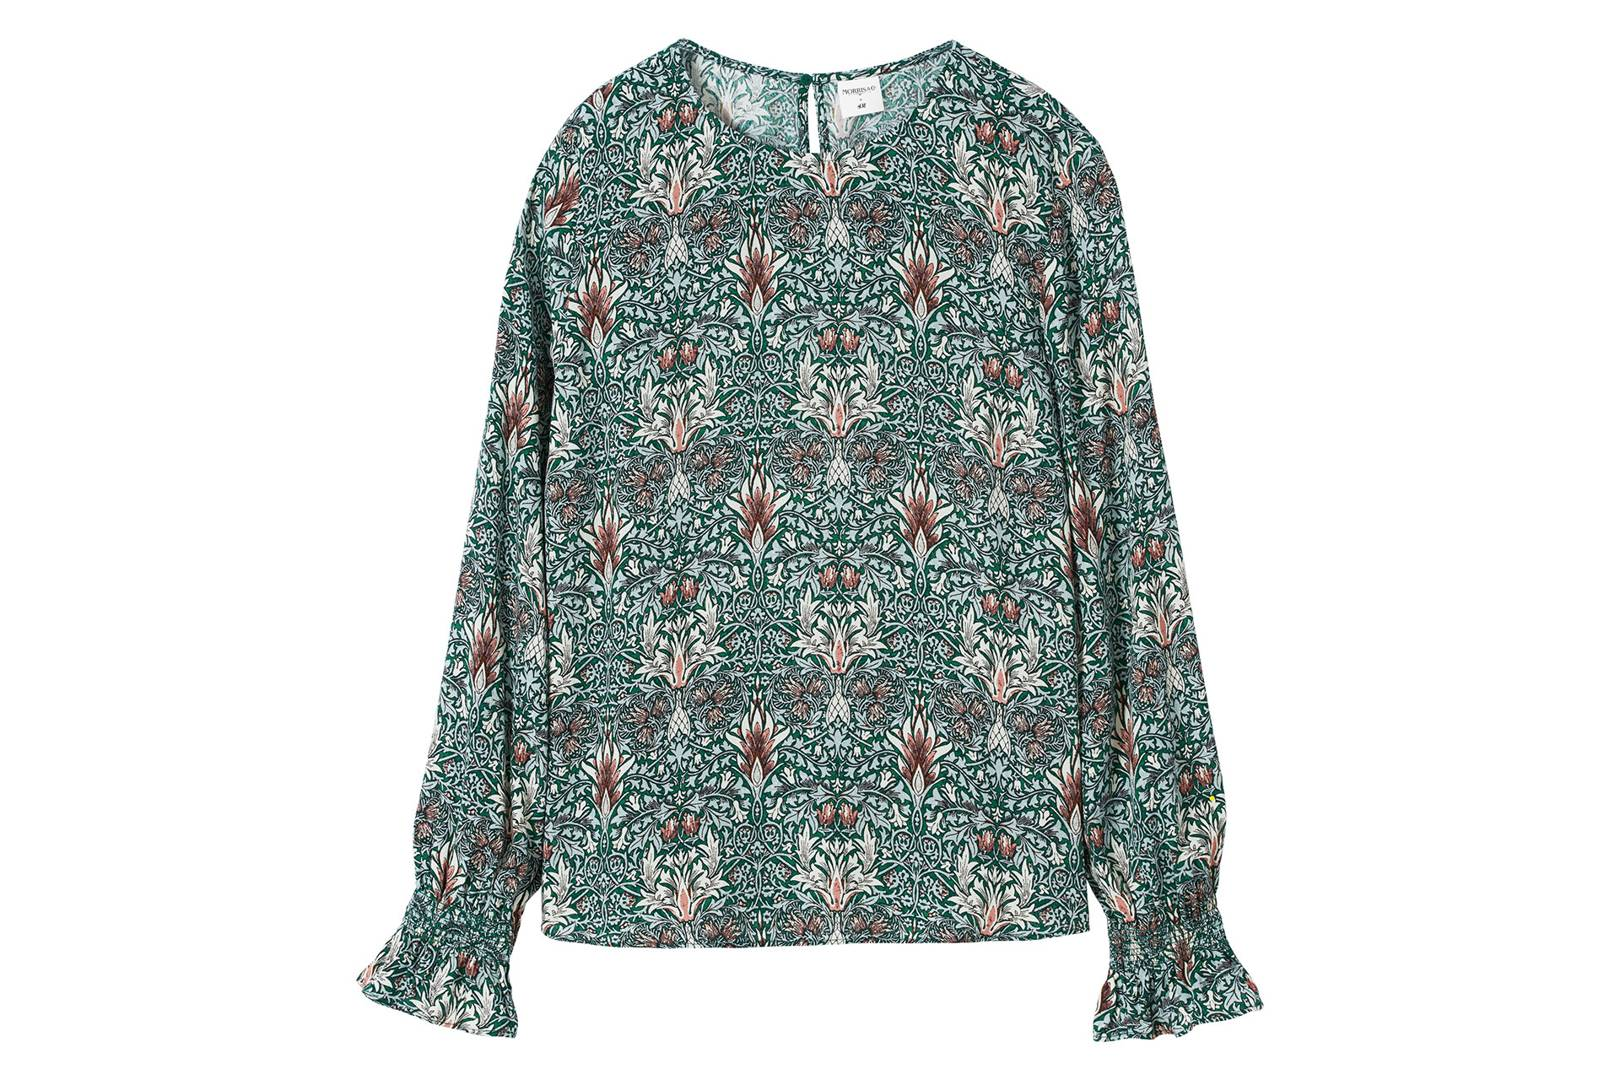 50ad551b0027 H&M x William Morris: The Best Pieces To Buy | British Vogue